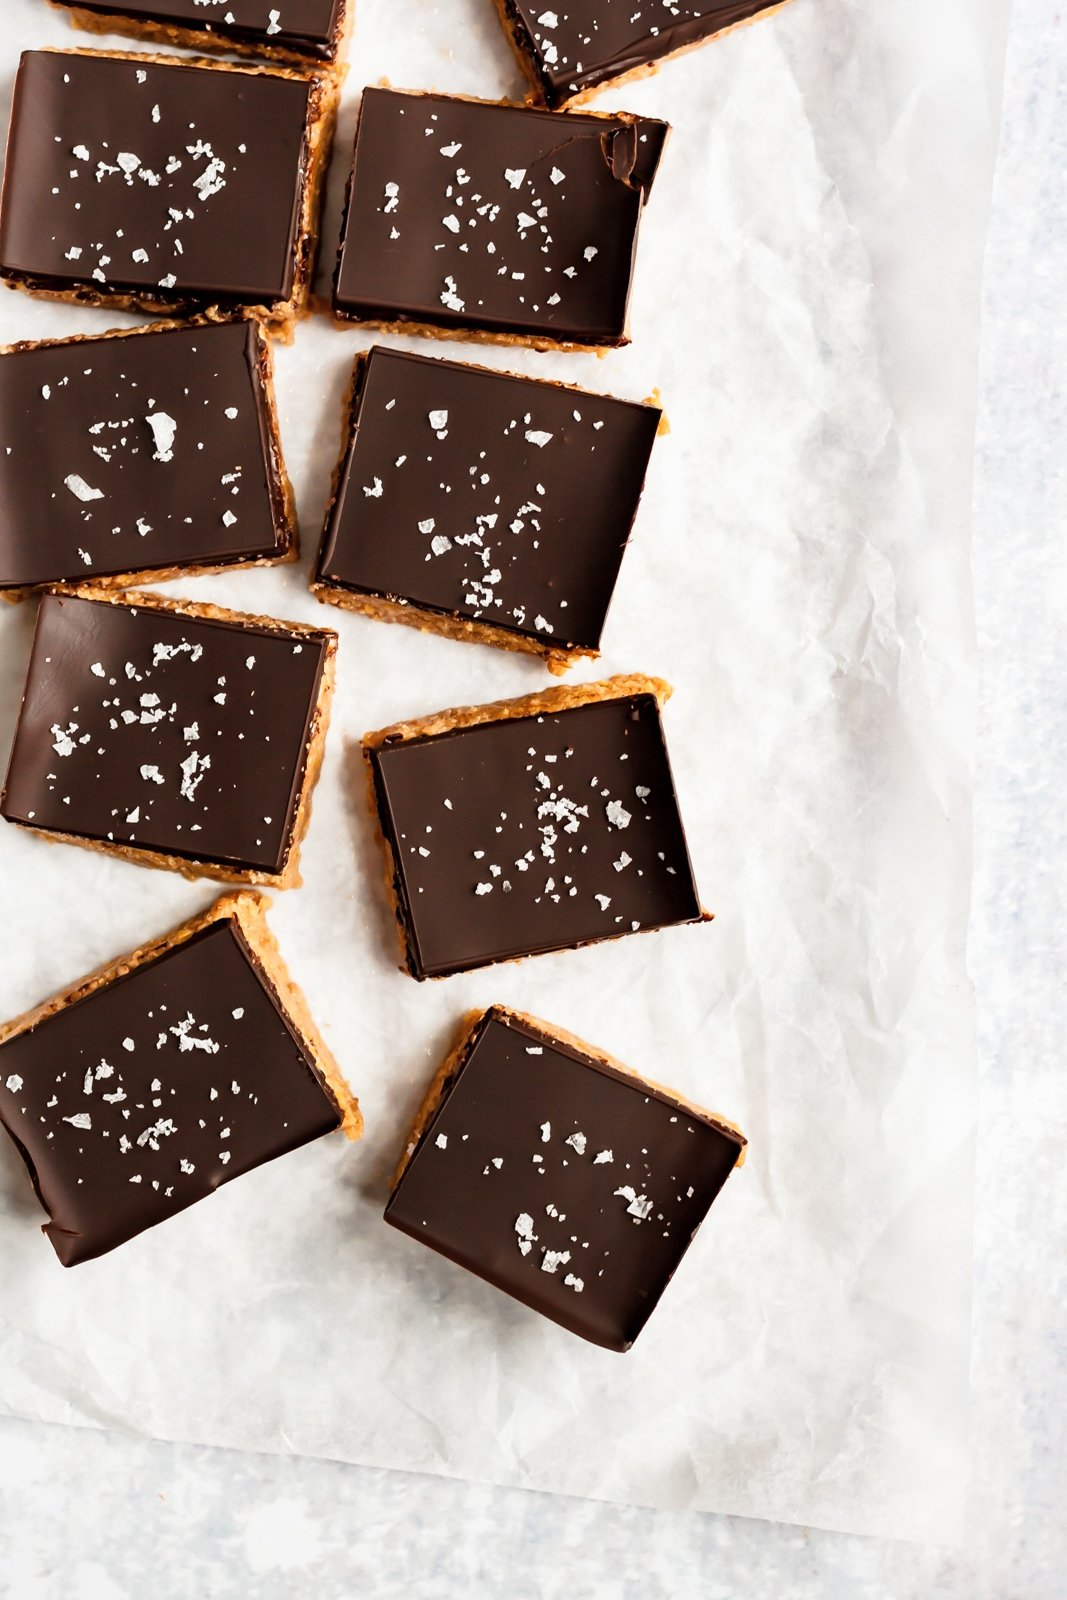 peanut butter protein bars topped with chocolate and sea salt